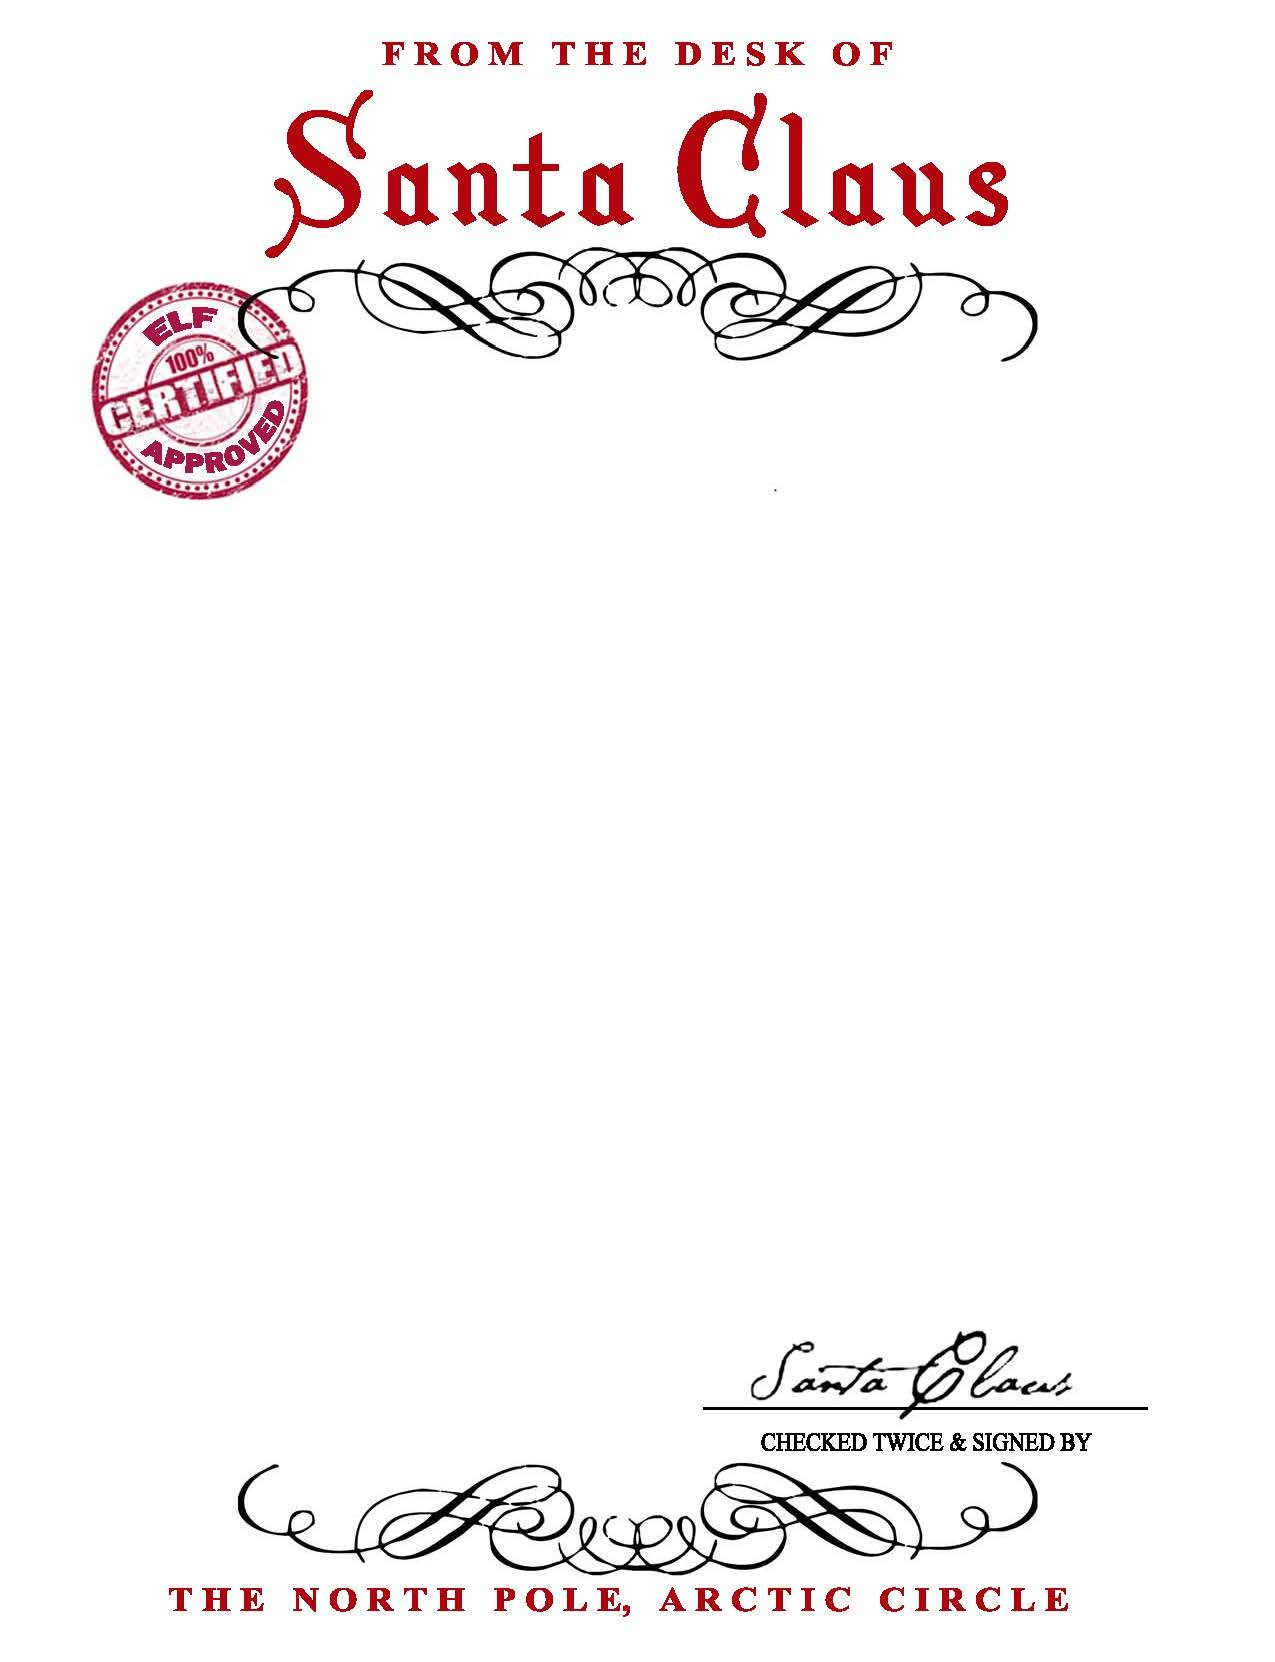 Click Here For A Free Printable Version Of The SANTA CLAUS LETTERHEAD